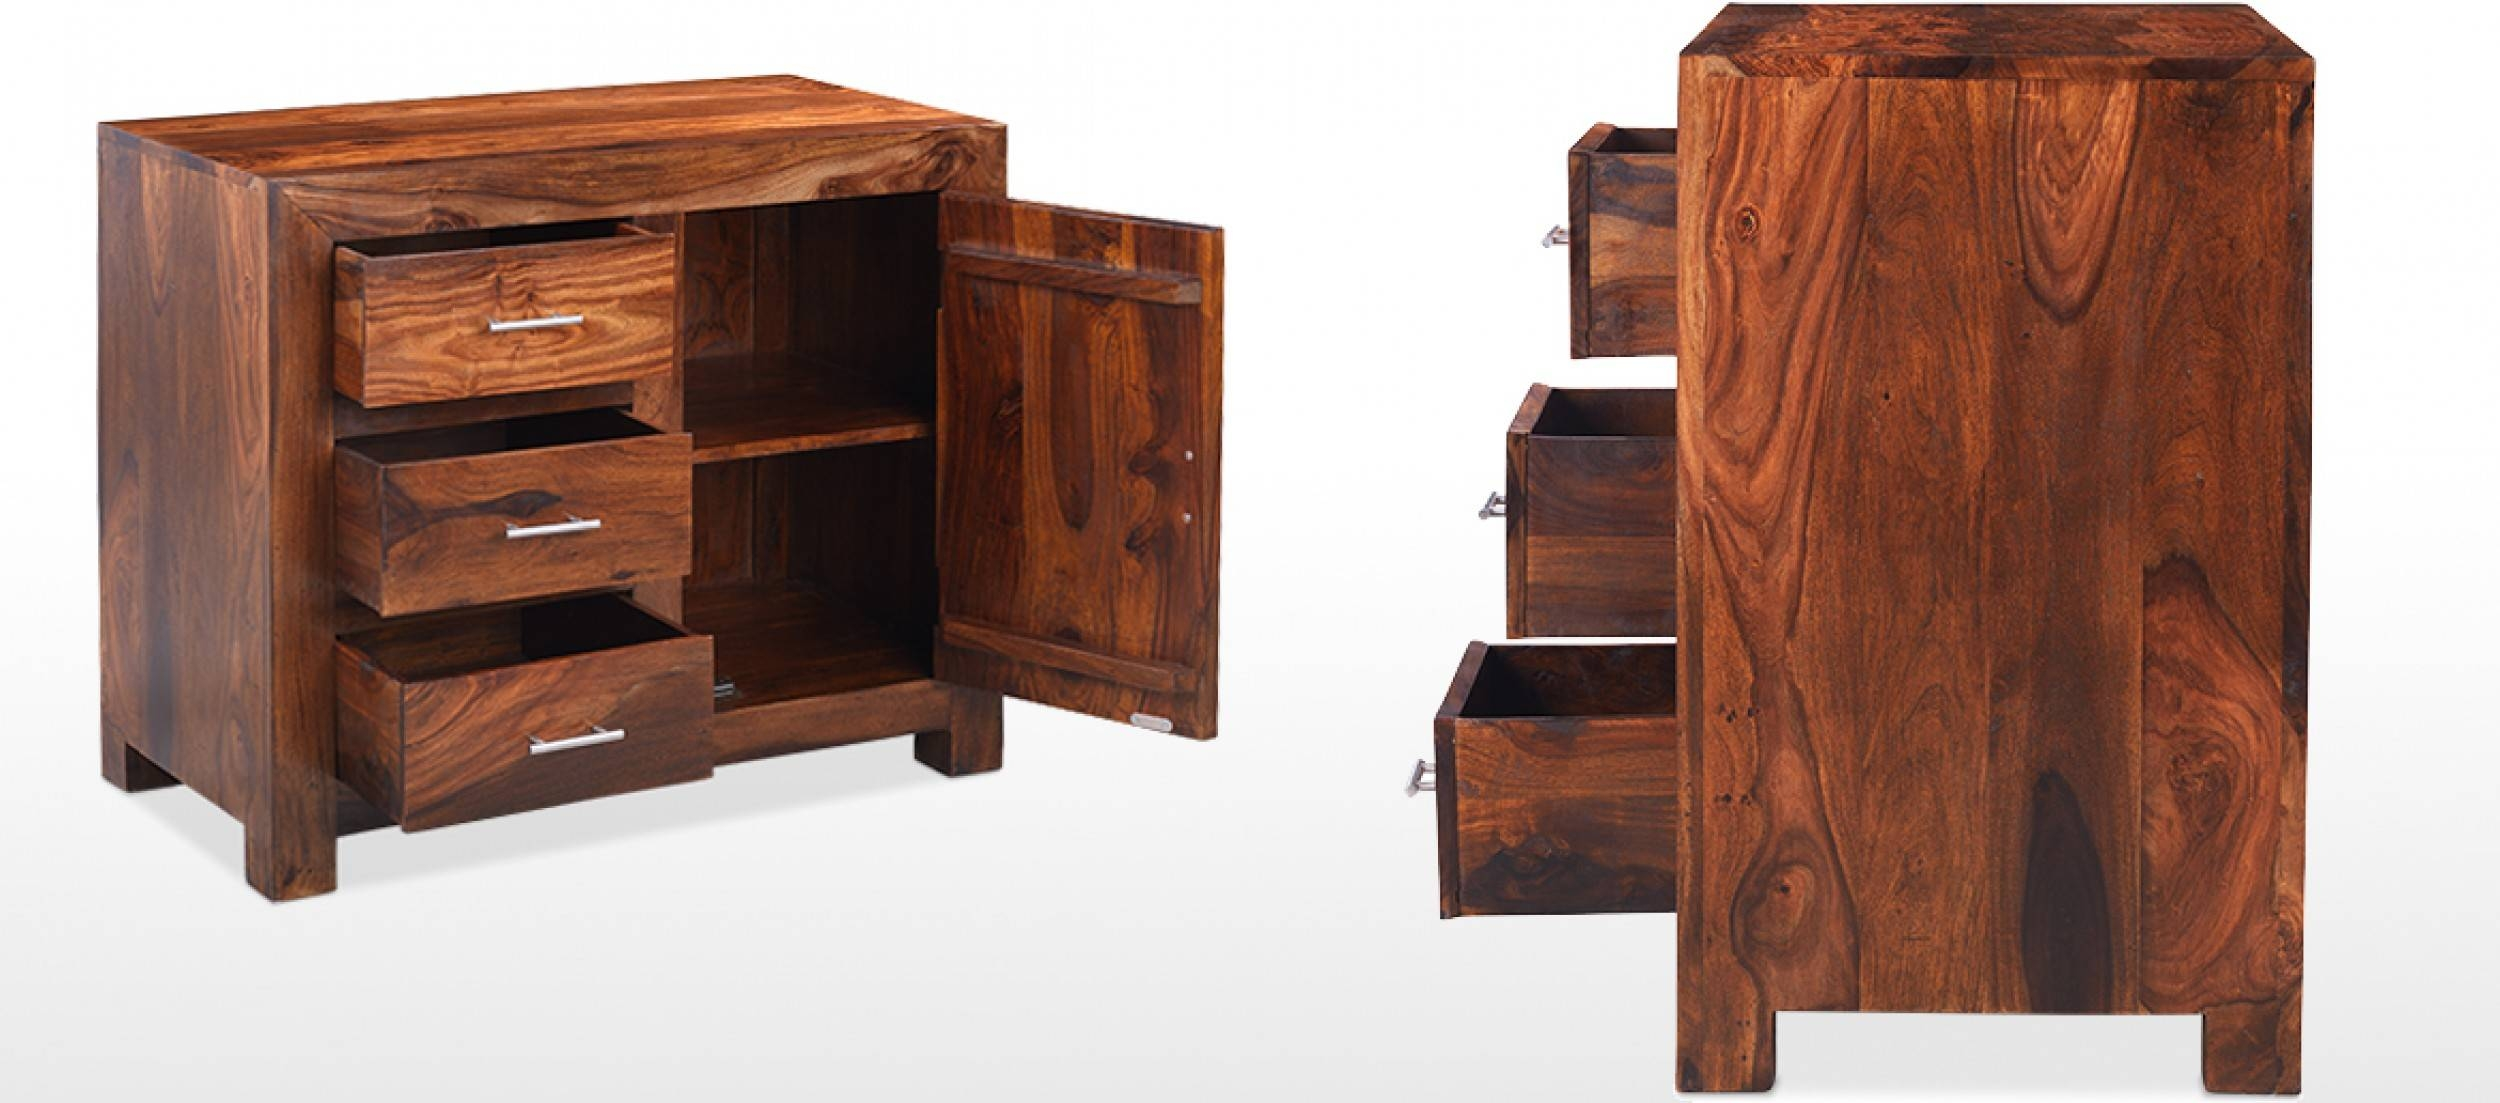 Cube Sheesham Small Sideboard | Quercus Living intended for Small Dark Wood Sideboards (Image 4 of 30)